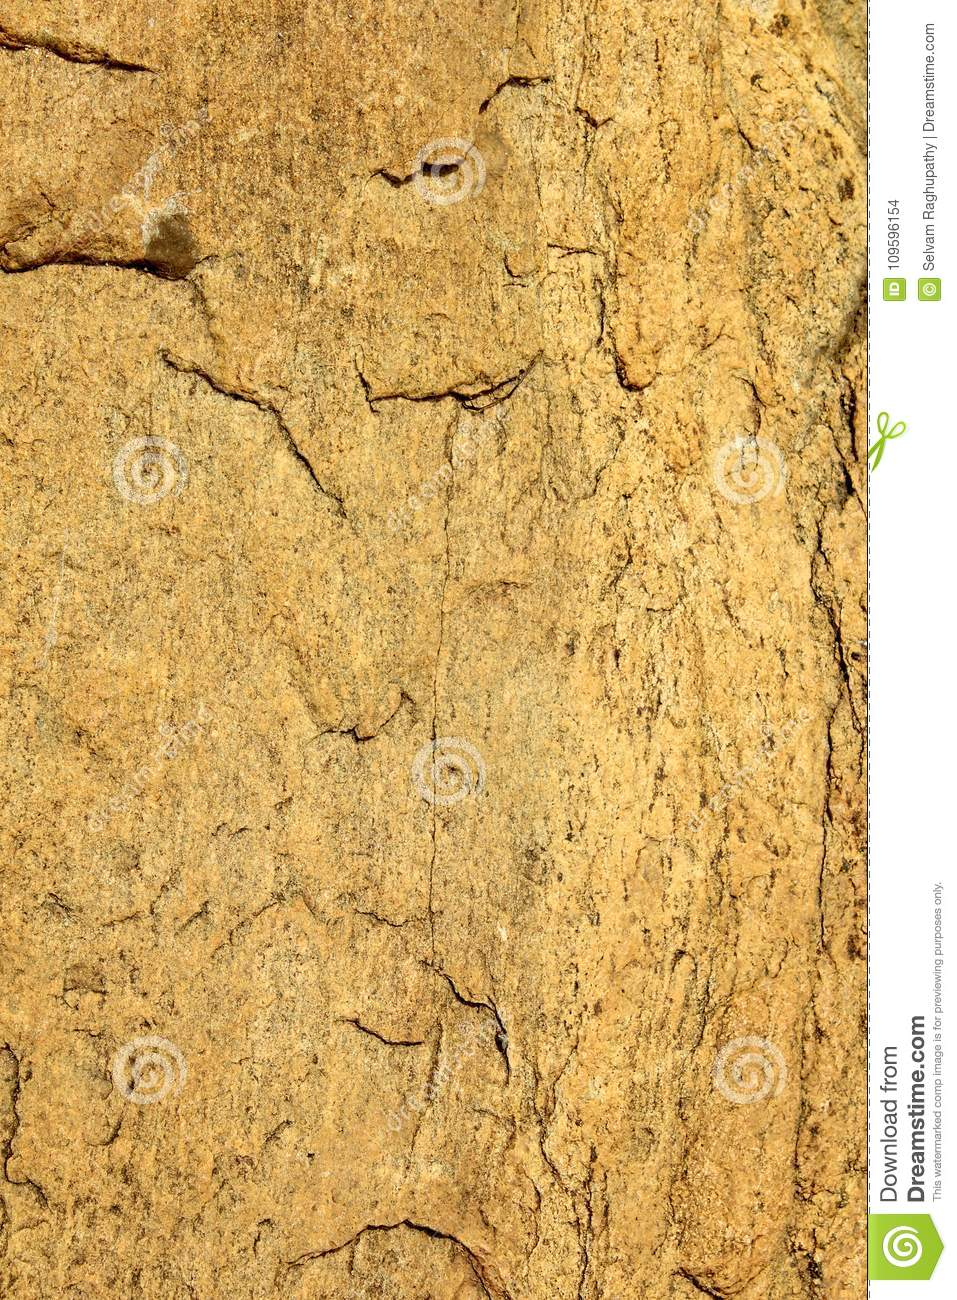 A different vertical frame of cracked rock texture natural background.